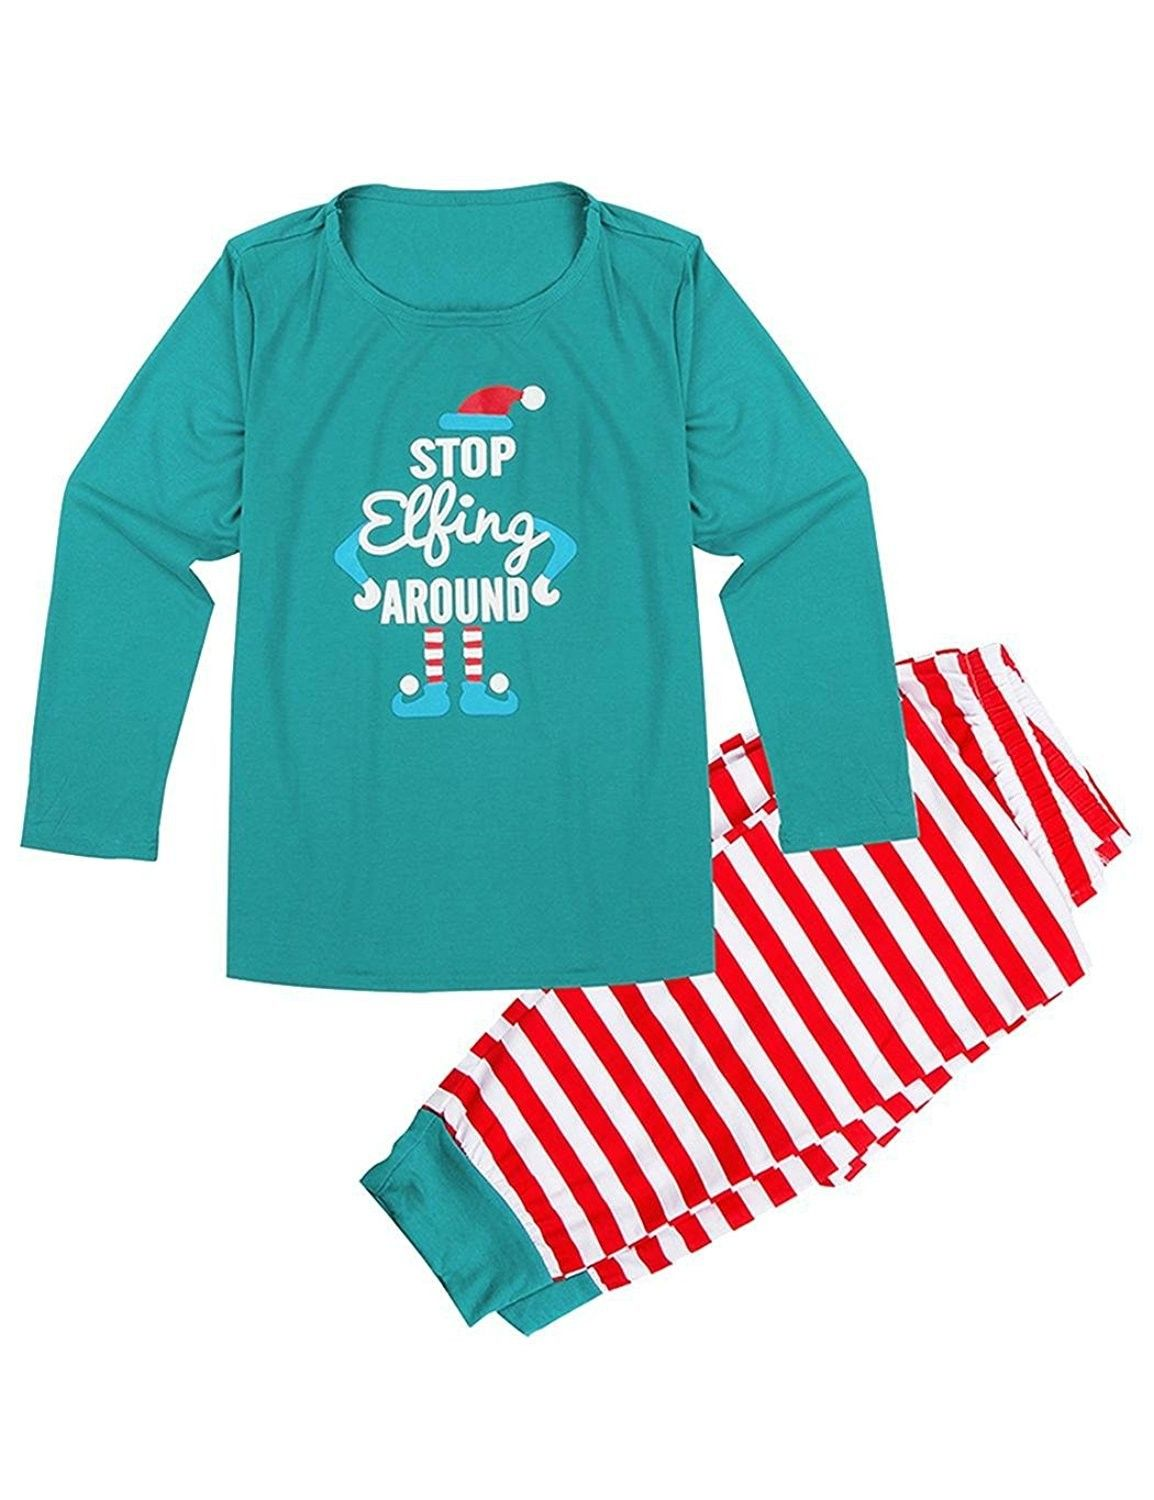 299a1862b6 Pajamas Set Cotton Striped Christmas 2 Pieces PJS Sleepwear For Family Dad  Mom Kids - Green Tops_women's - CR187T7Y6H0,Women's Clothing, Lingerie, ...